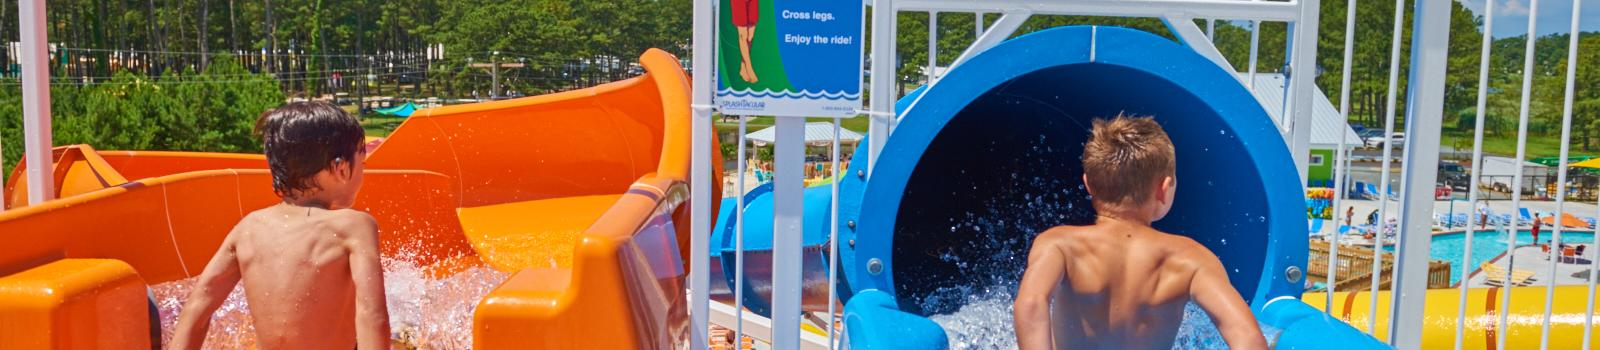 Race to the bottom at Maui Jack's Waterpark